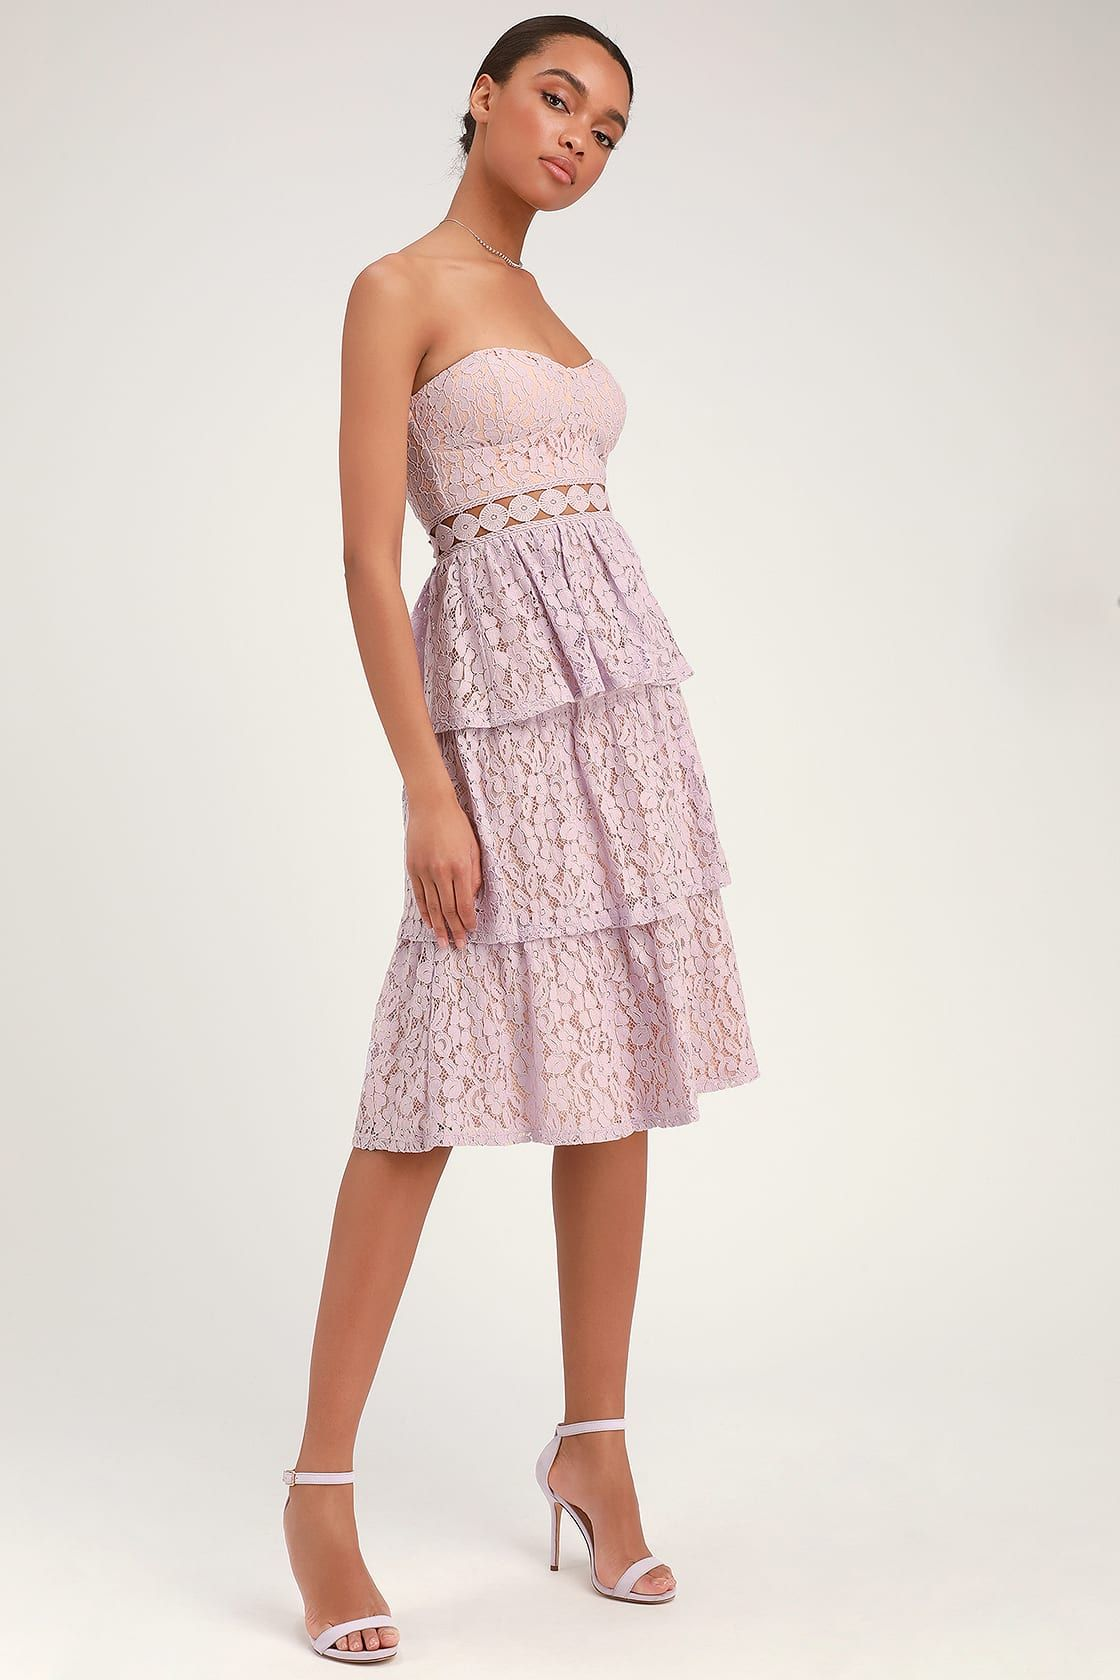 High Waisted Tiered Tulle Star Sequin Skirt Pink | Lily Lulu